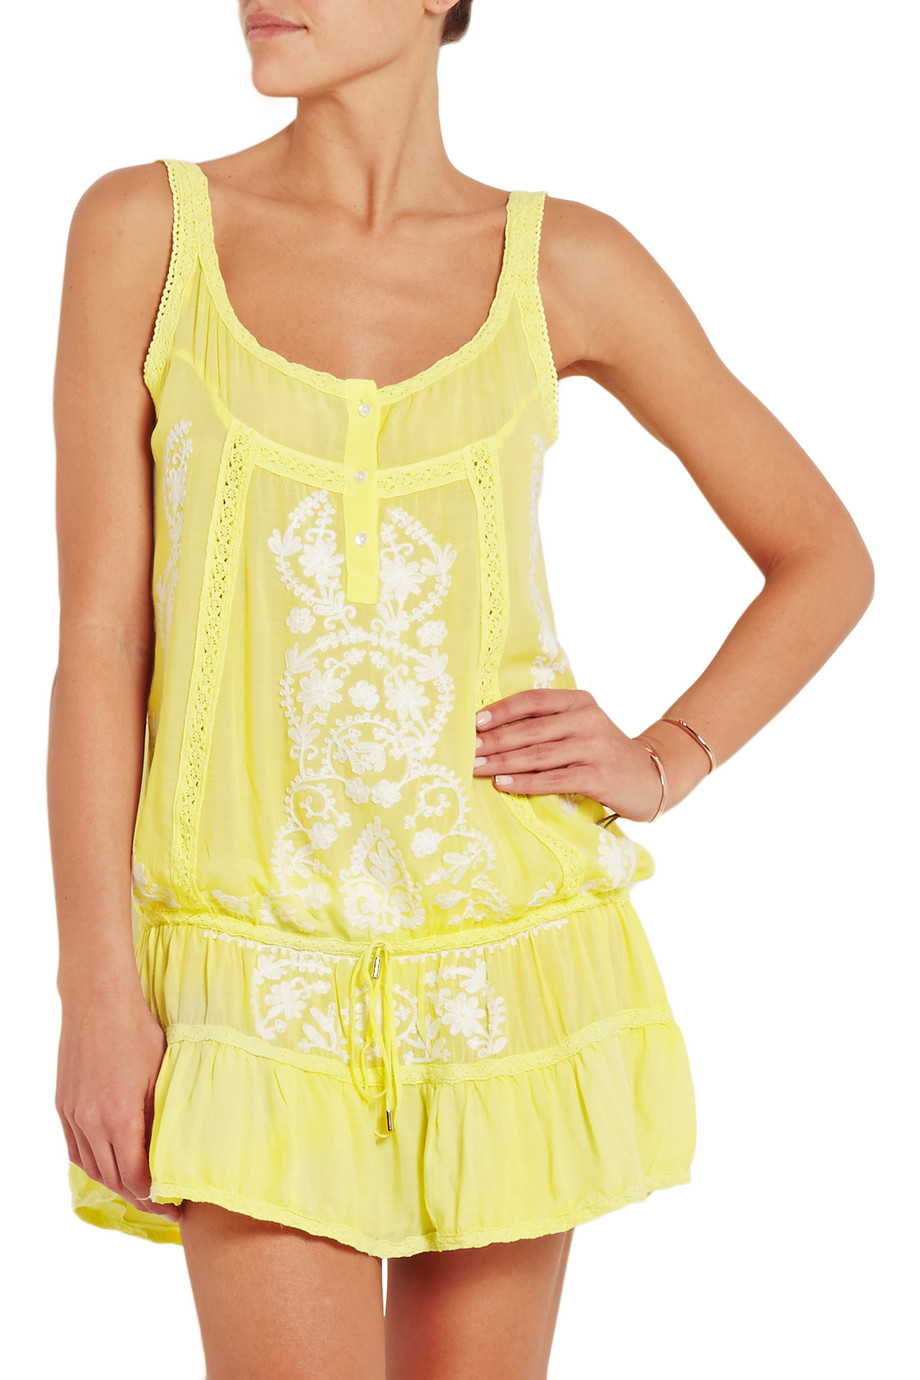 Melissa Odabash Jaz Embroidered Muslin Dress, Yellow, Women's